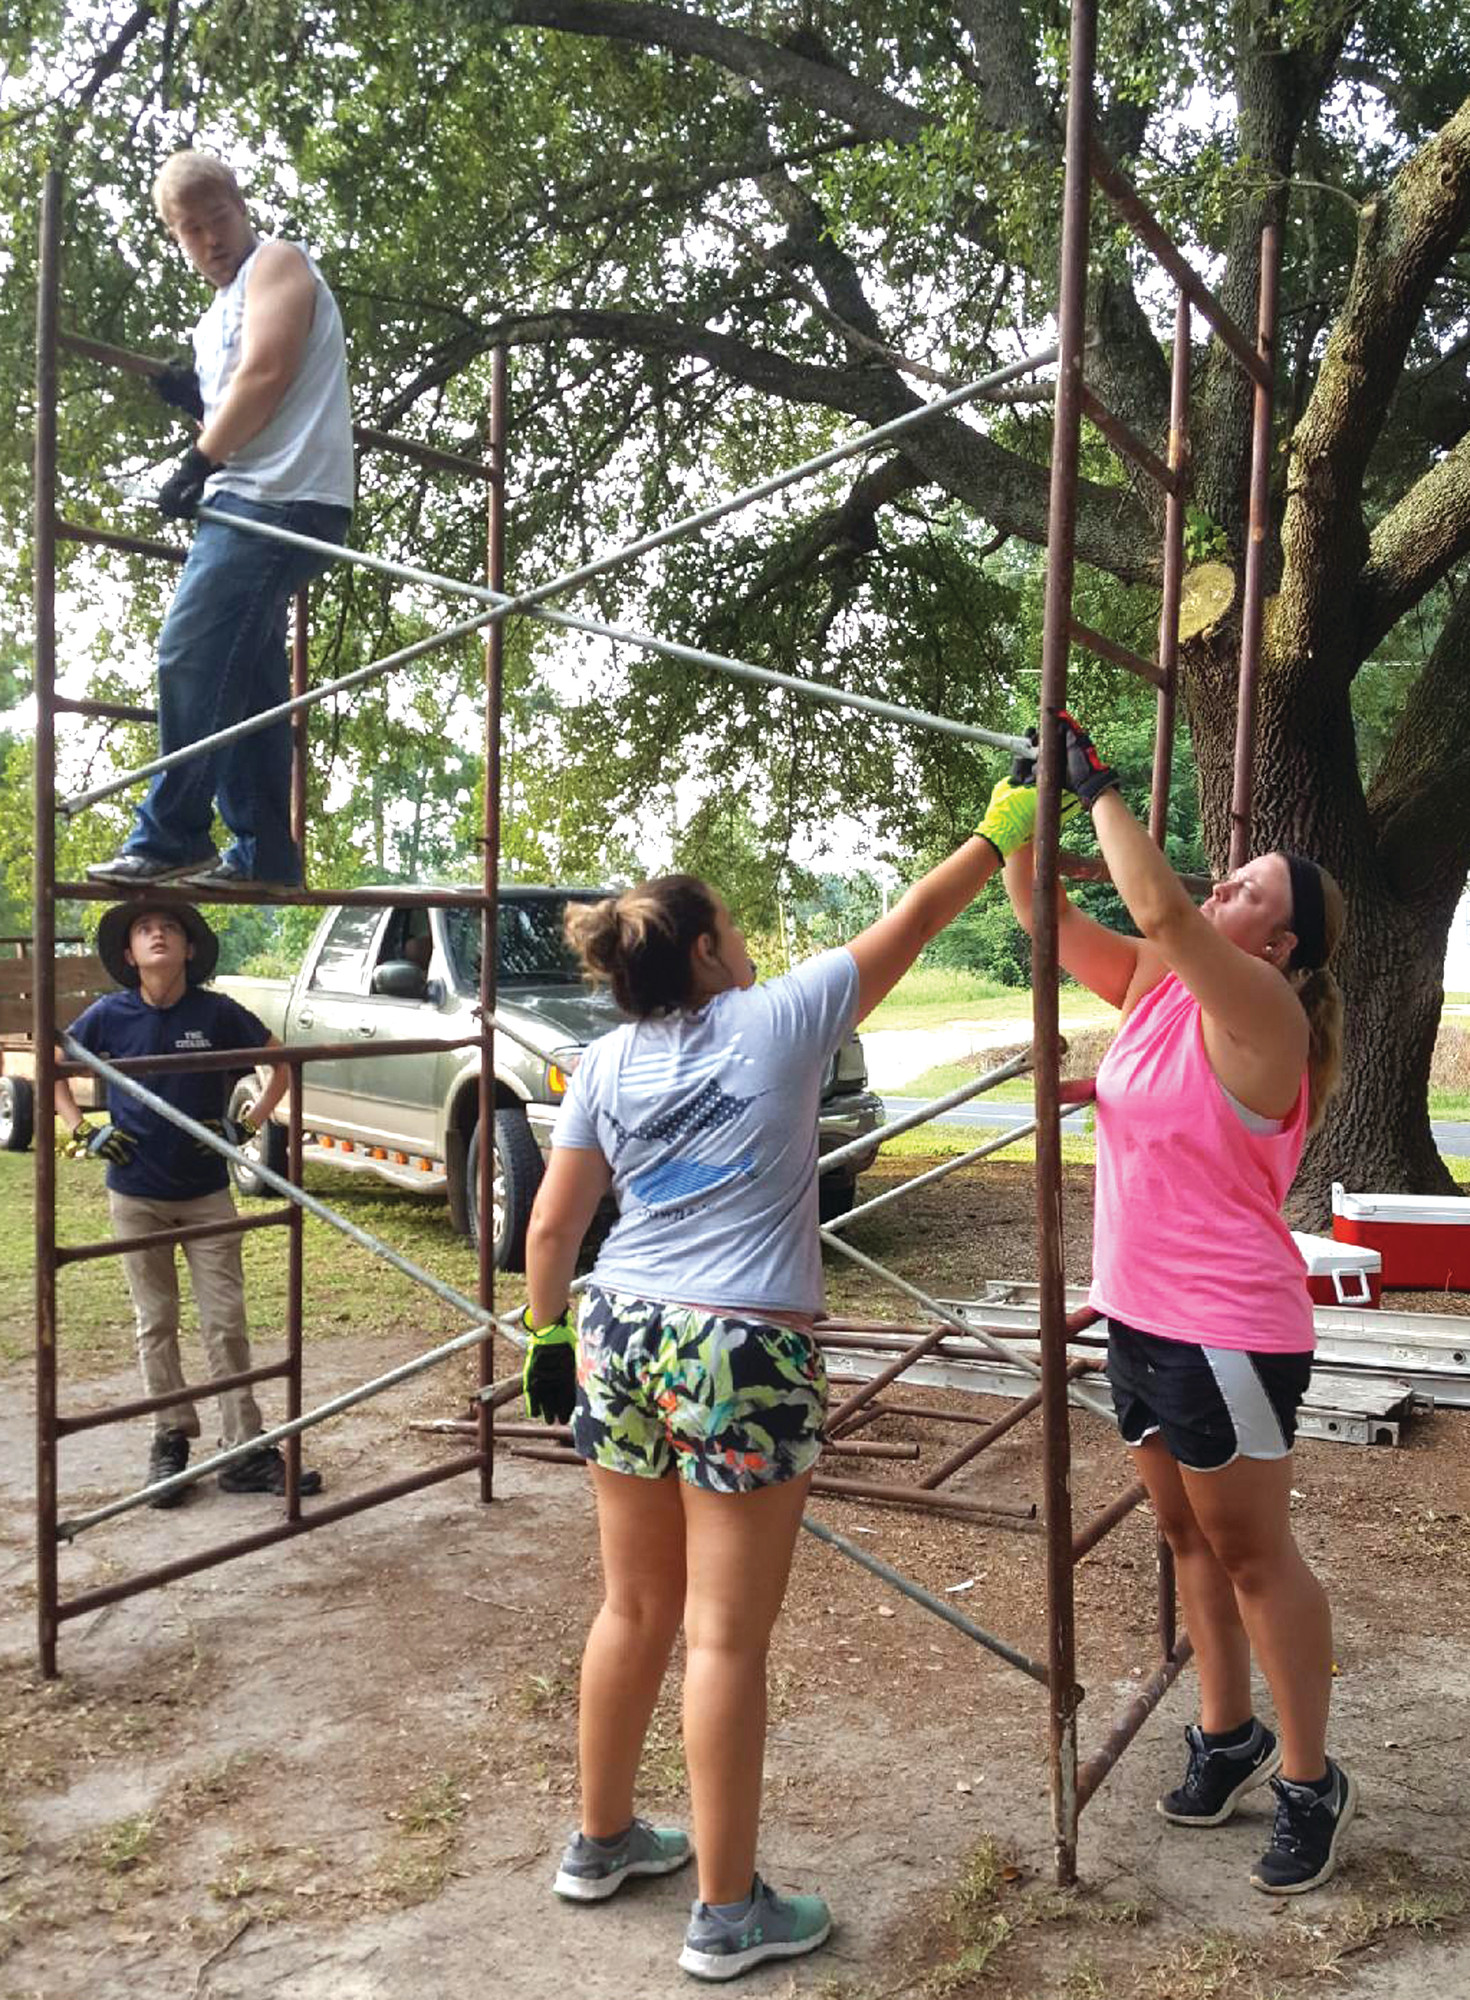 PHOTO PROVIDEDJessi Weir of Pinewood and two other Salkehatchie campers put together scaffolding before painting the exterior of a home during the week of July 15 in 